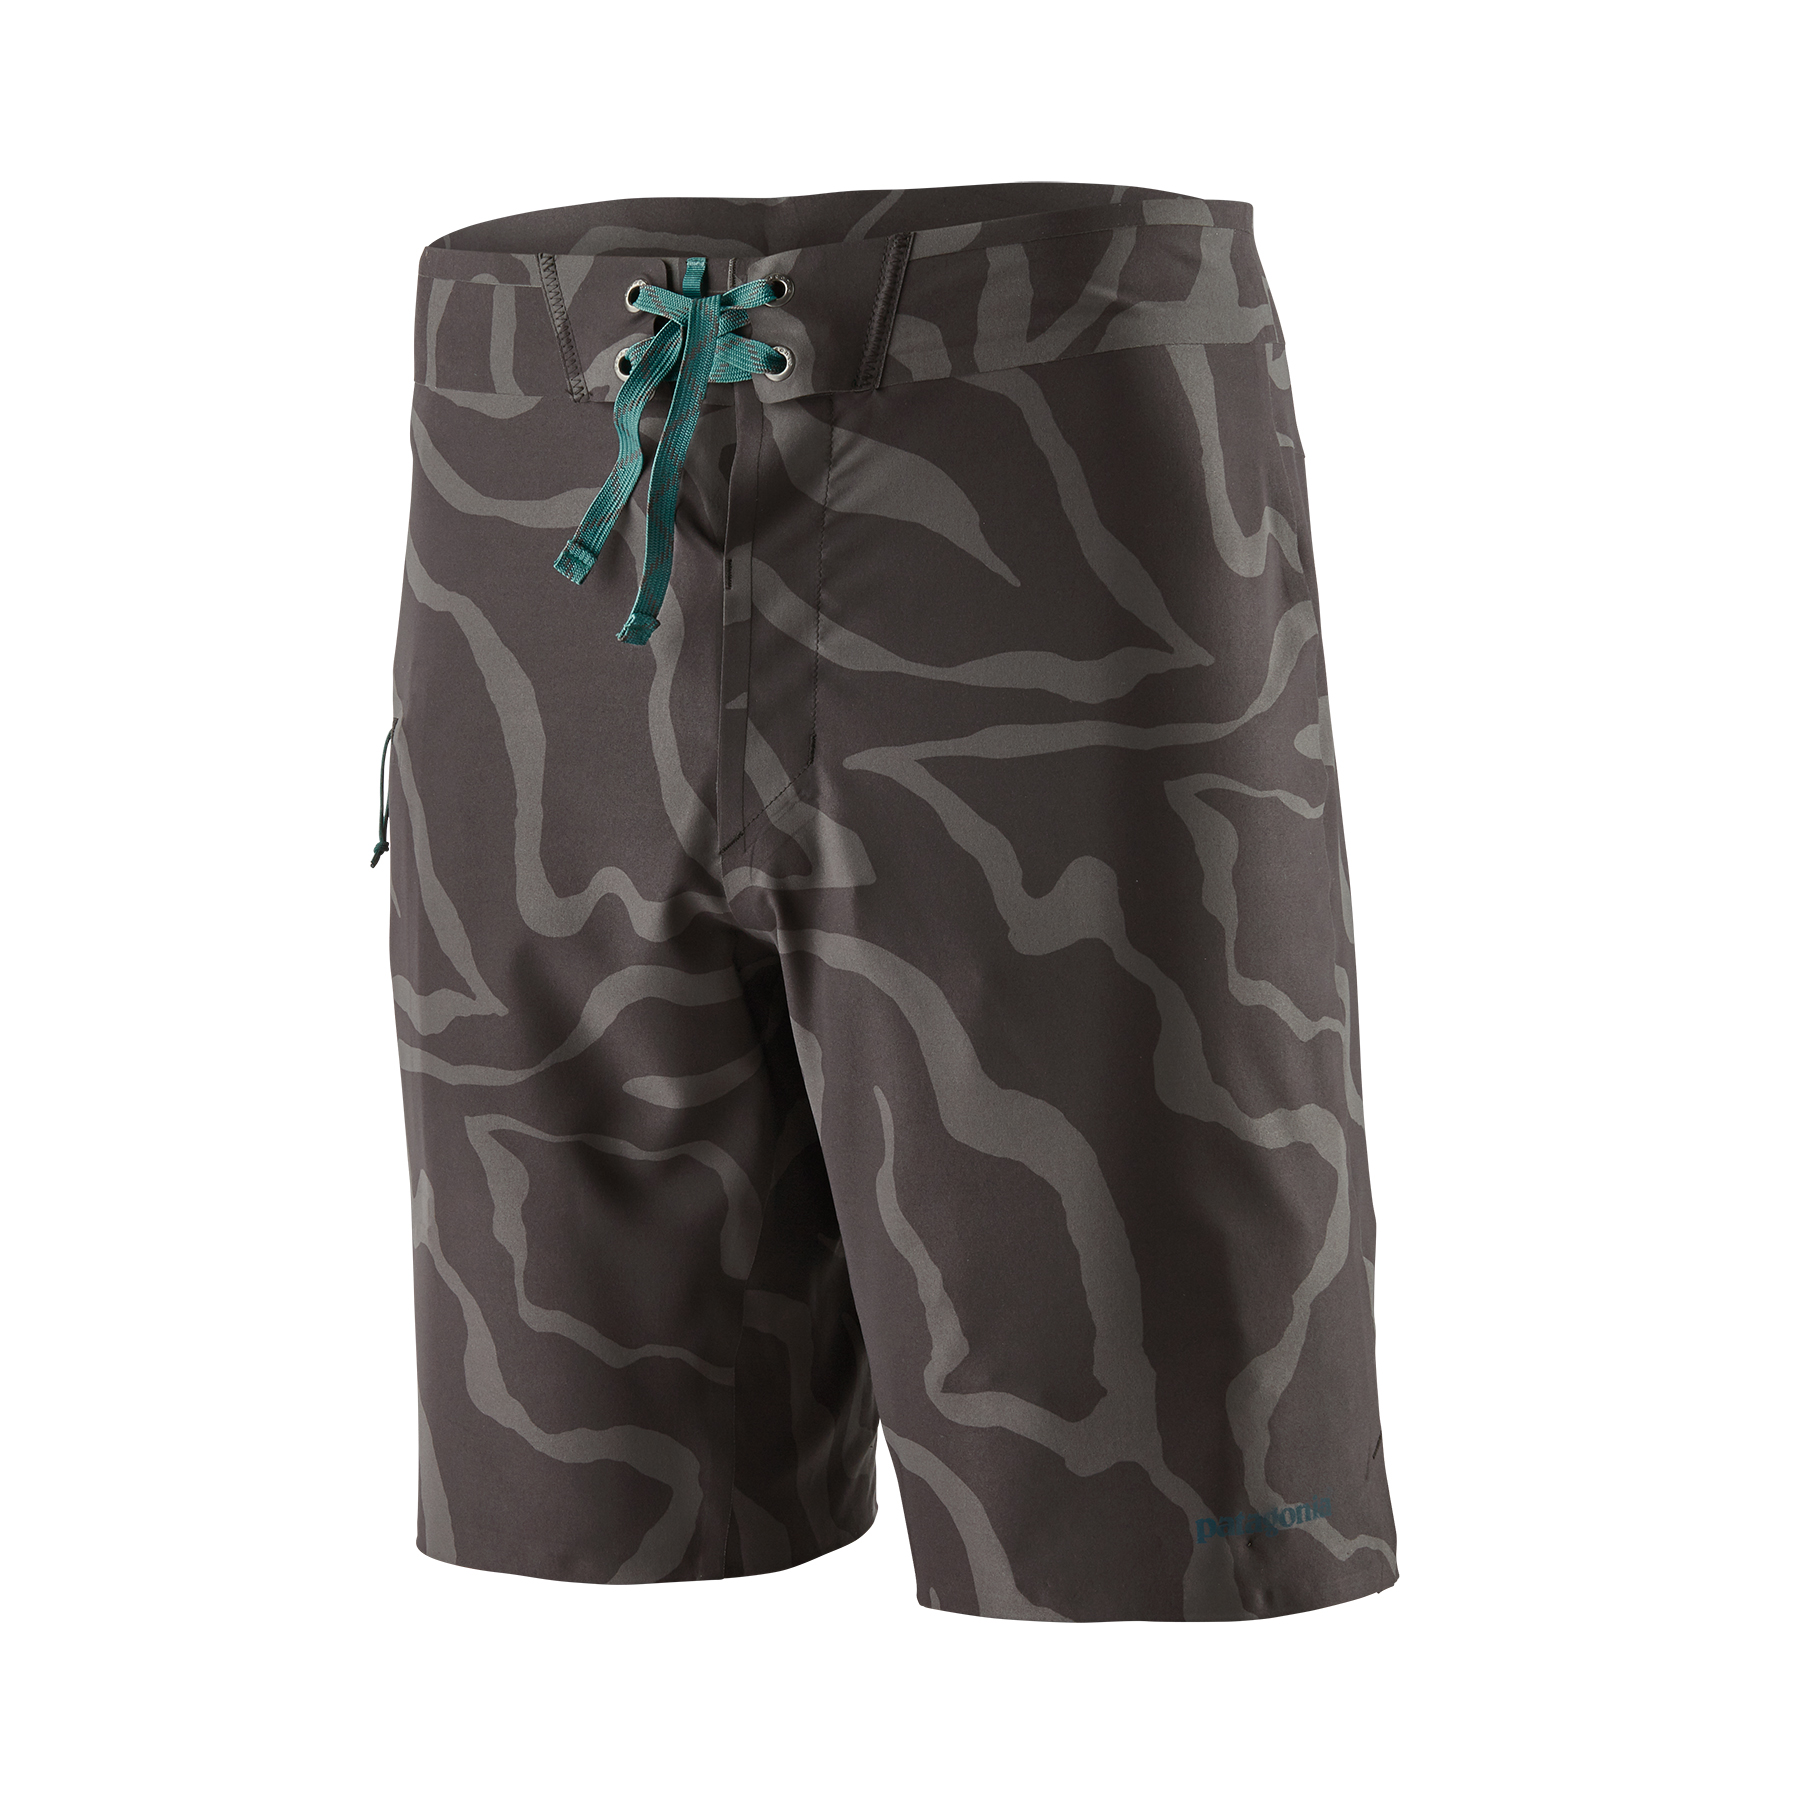 Patagonia SS21 Men's Surf Apparel